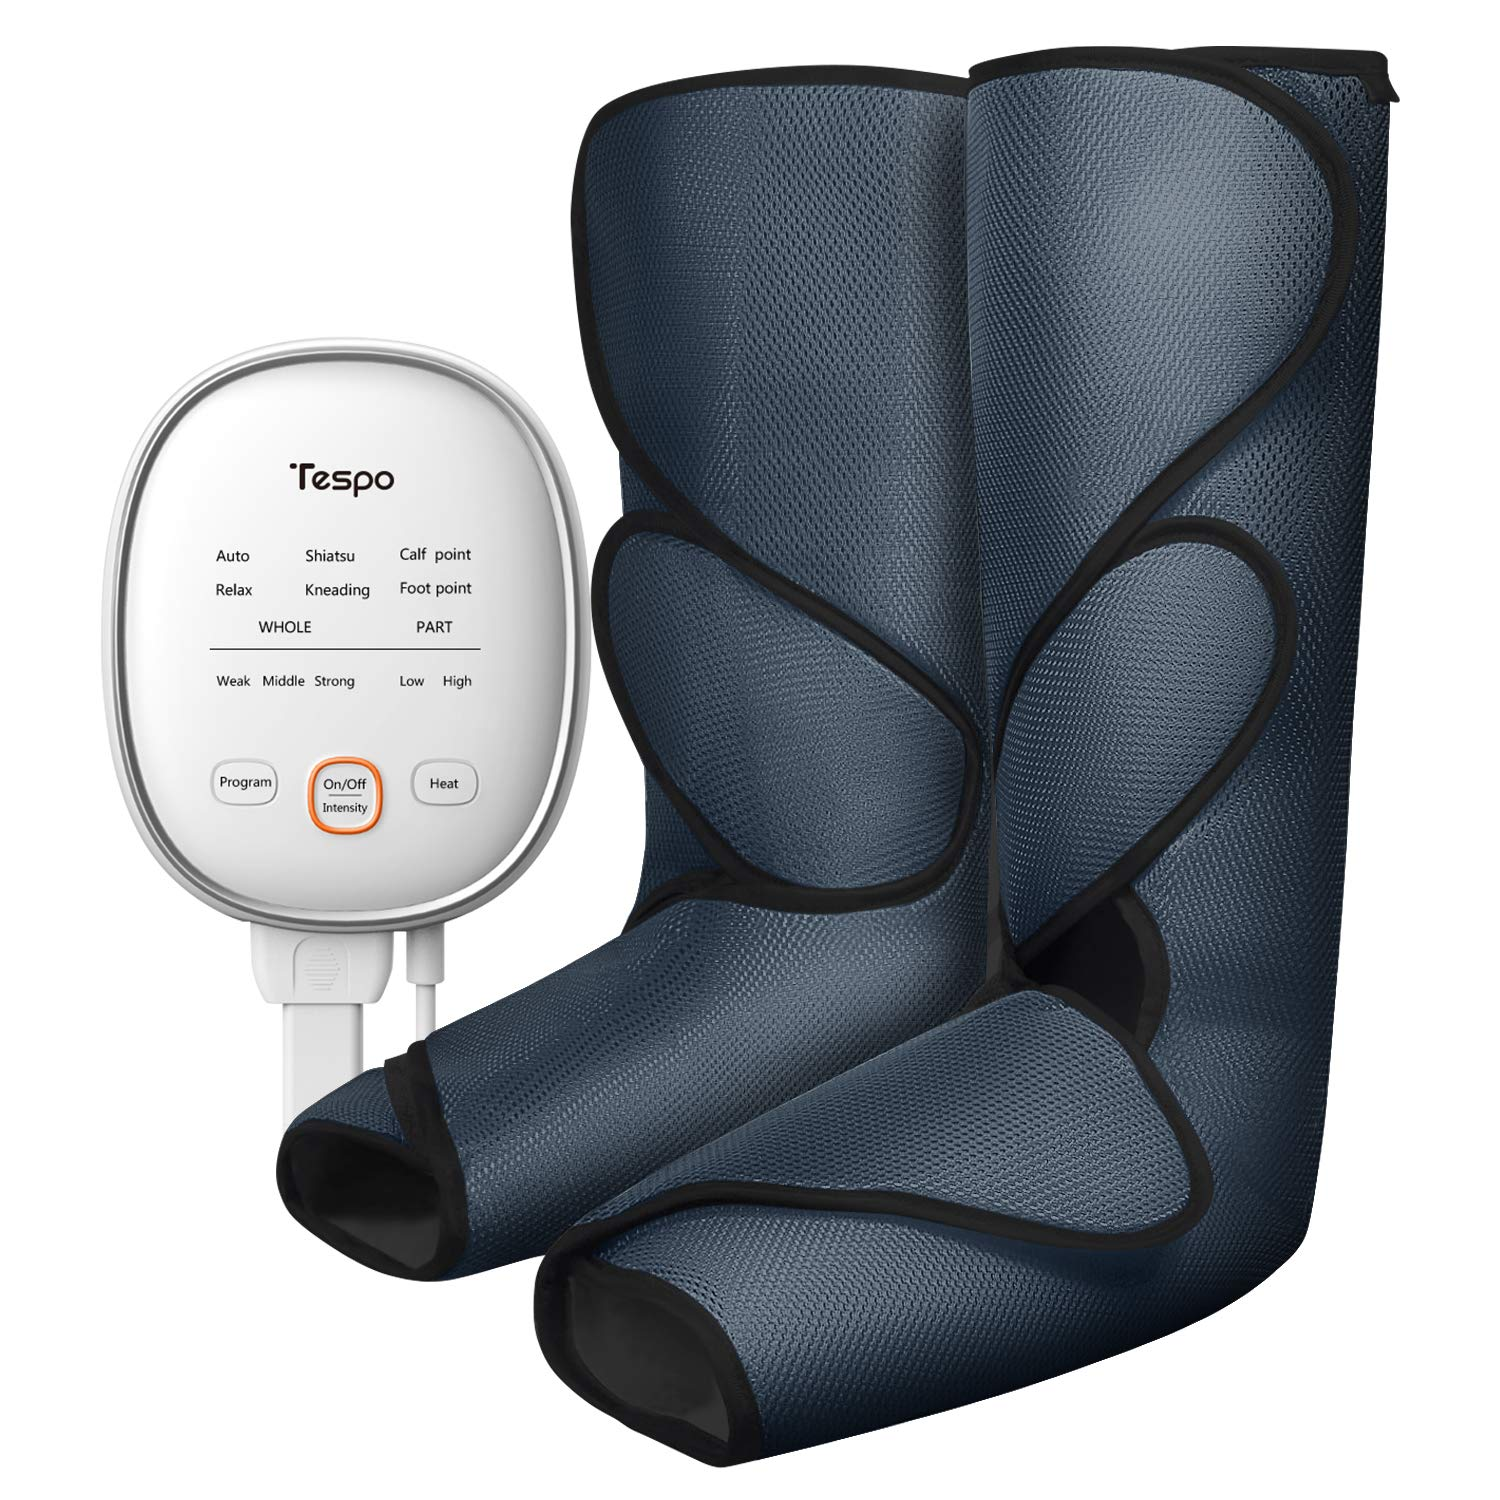 Tespo Leg Massager review